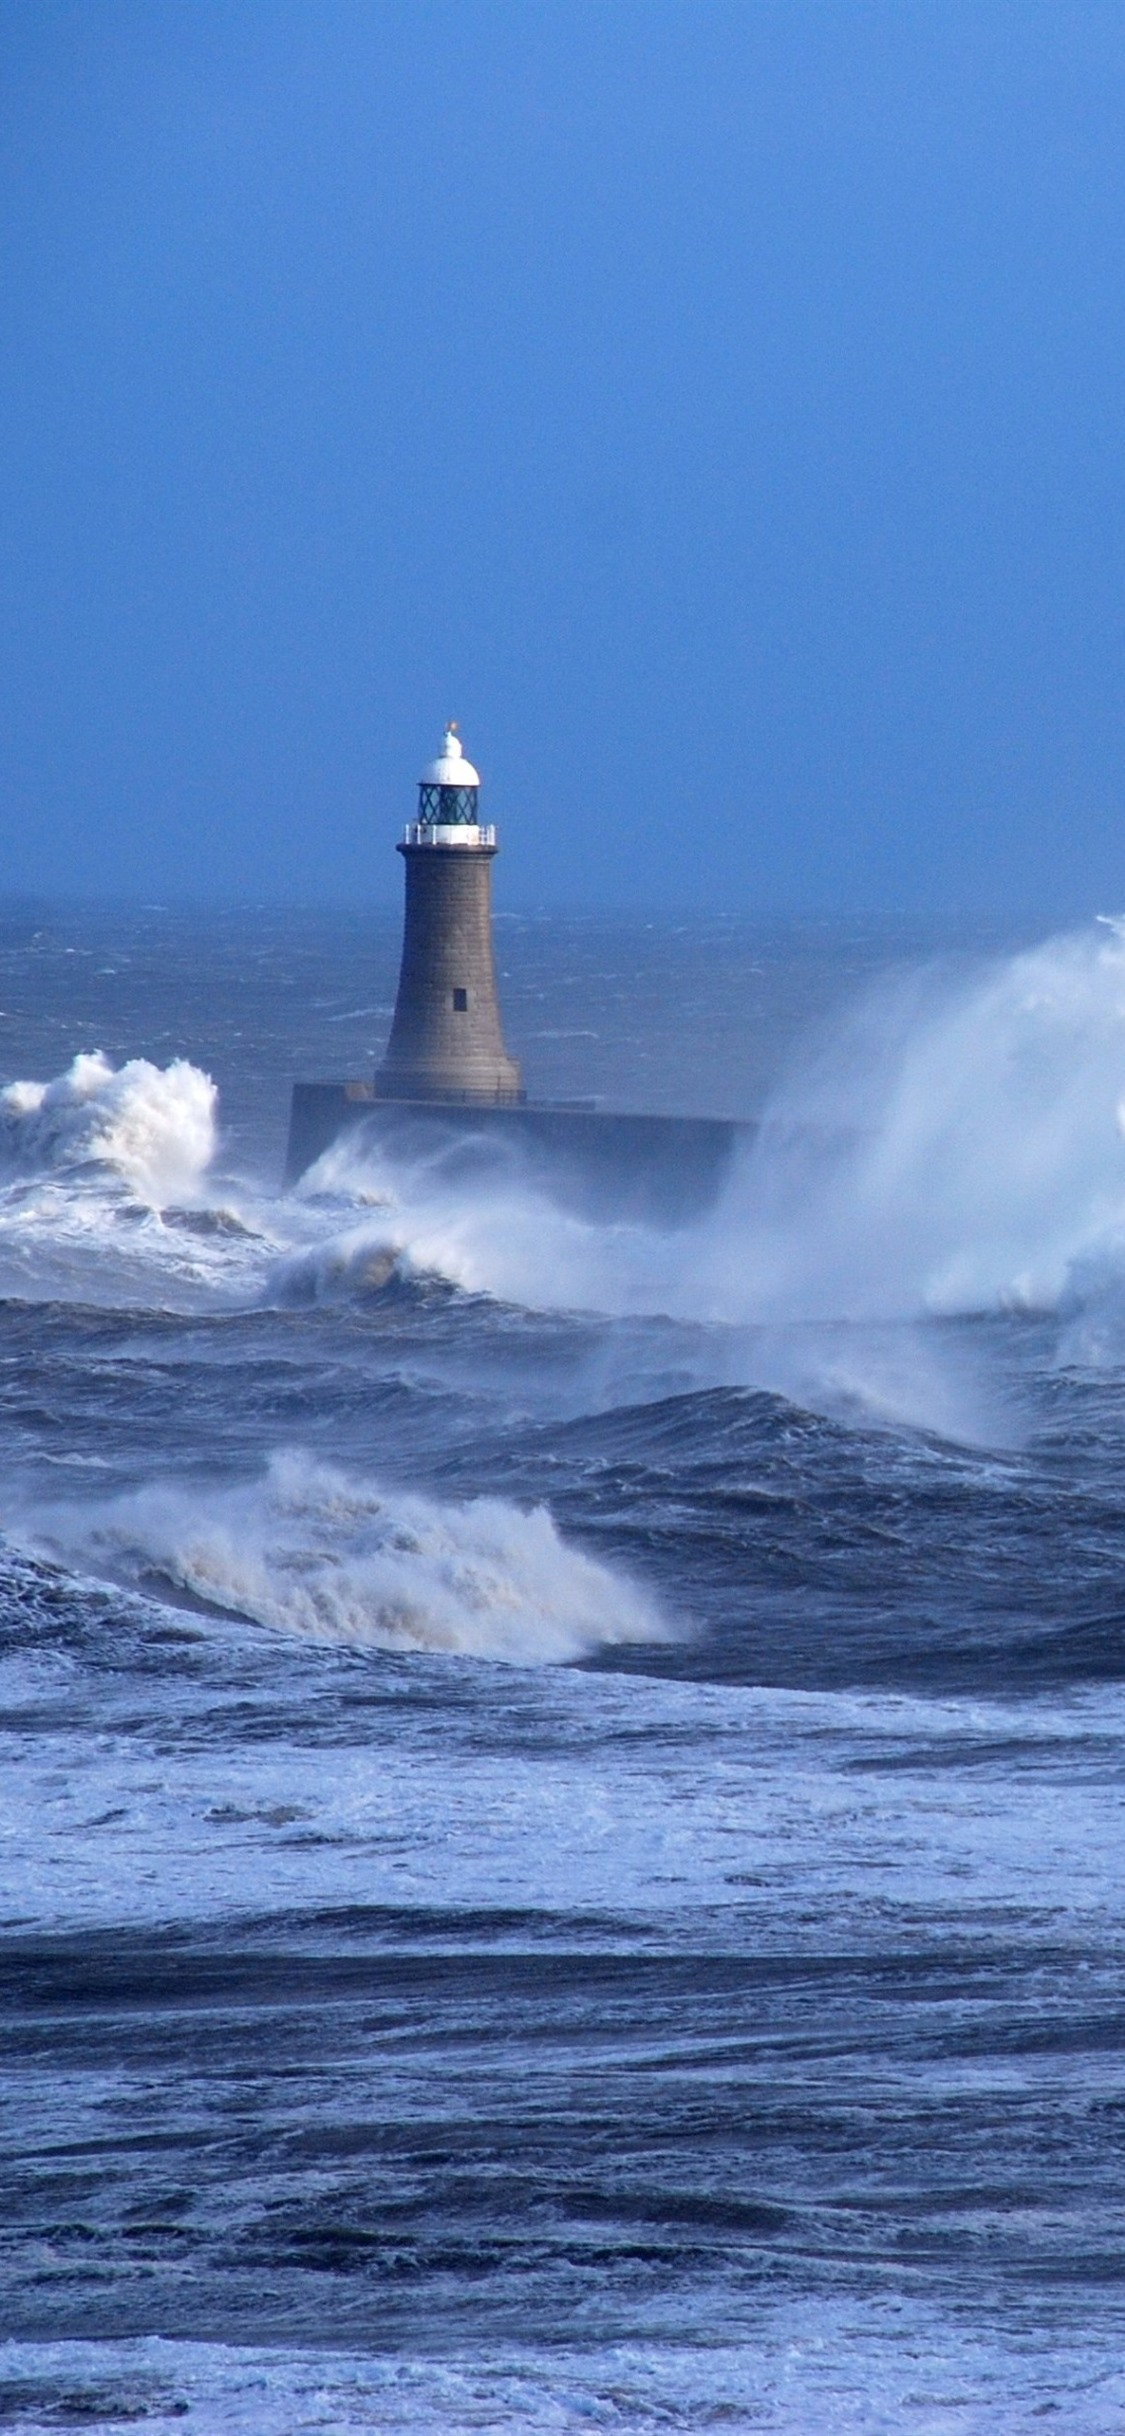 Wallpaper Sea Storm Waves Lighthouse 2880x1800 Hd Picture